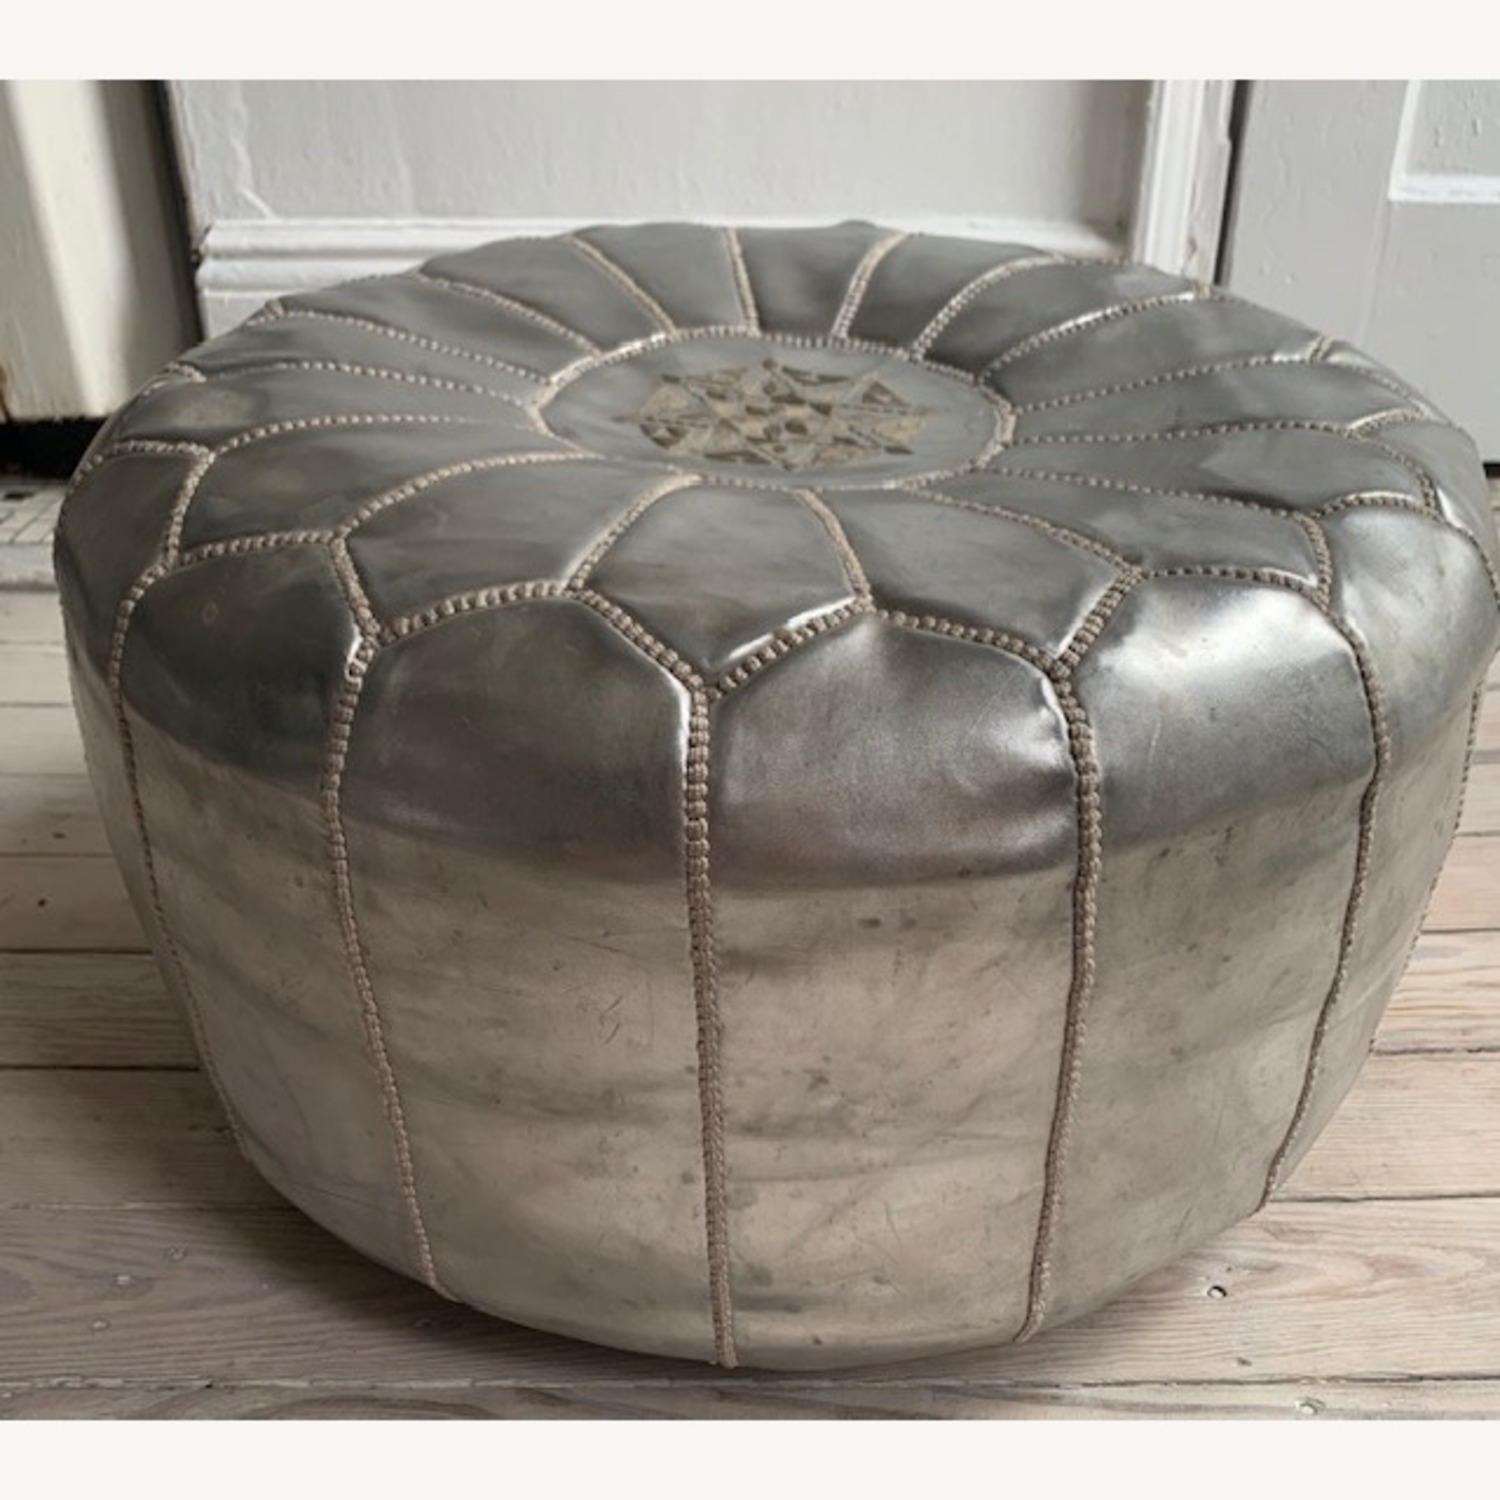 Silver Moroccan Leather Pouf - image-1